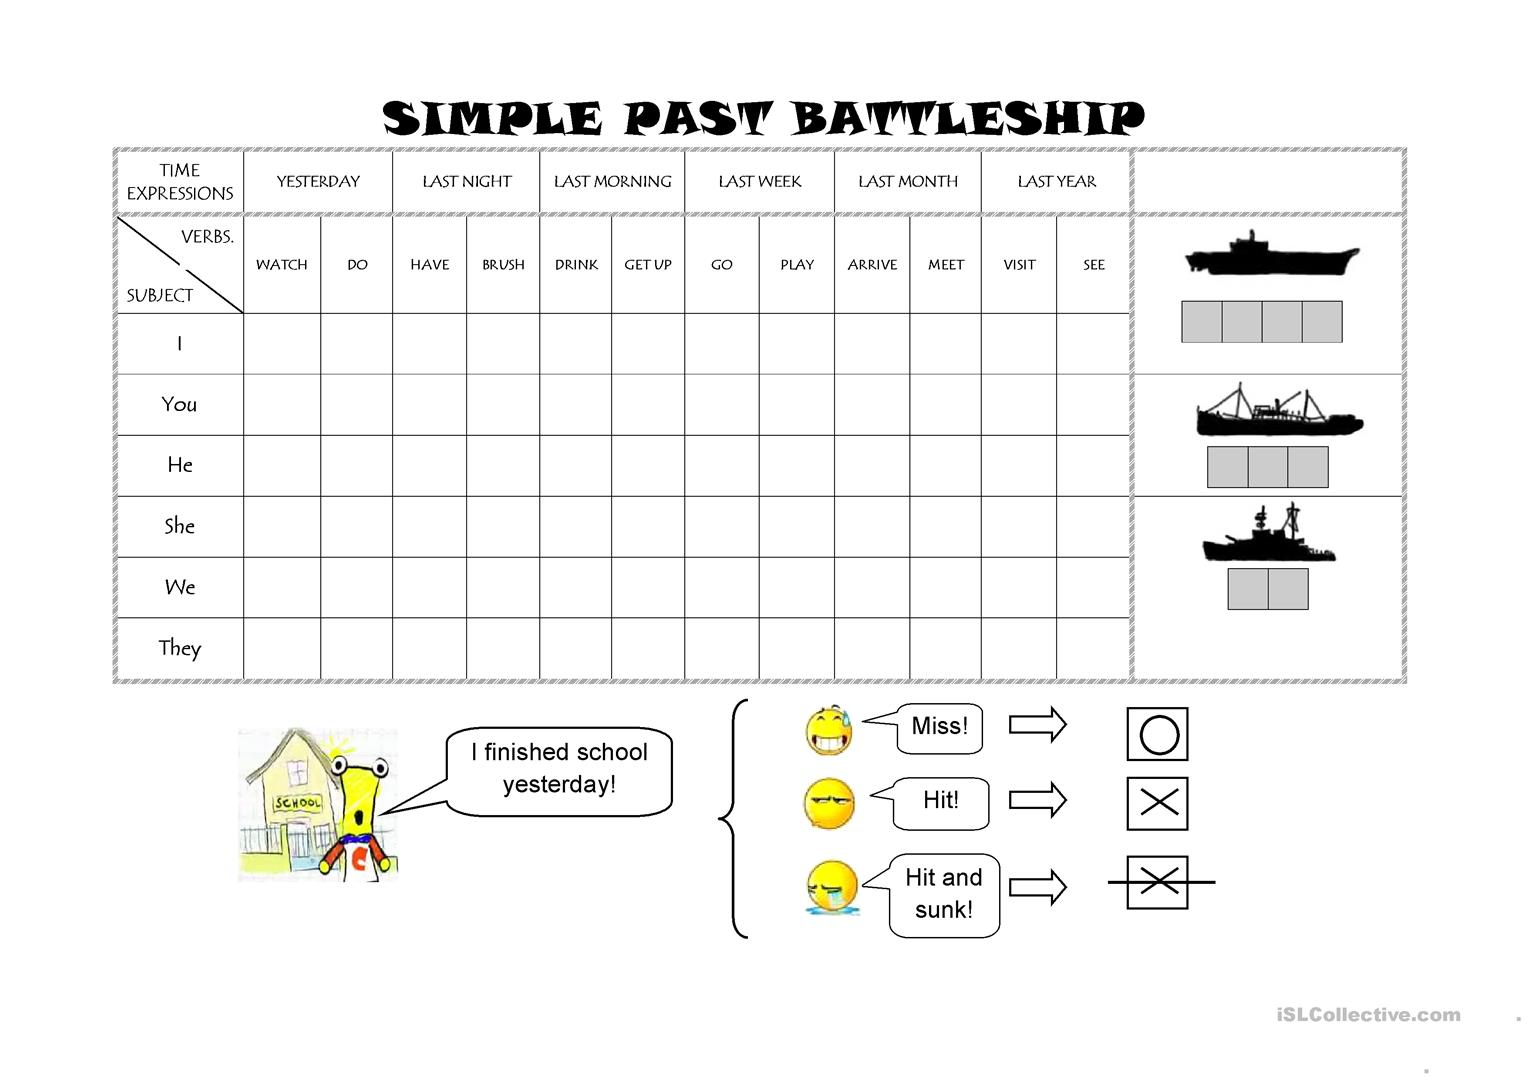 Simple Past Battleship